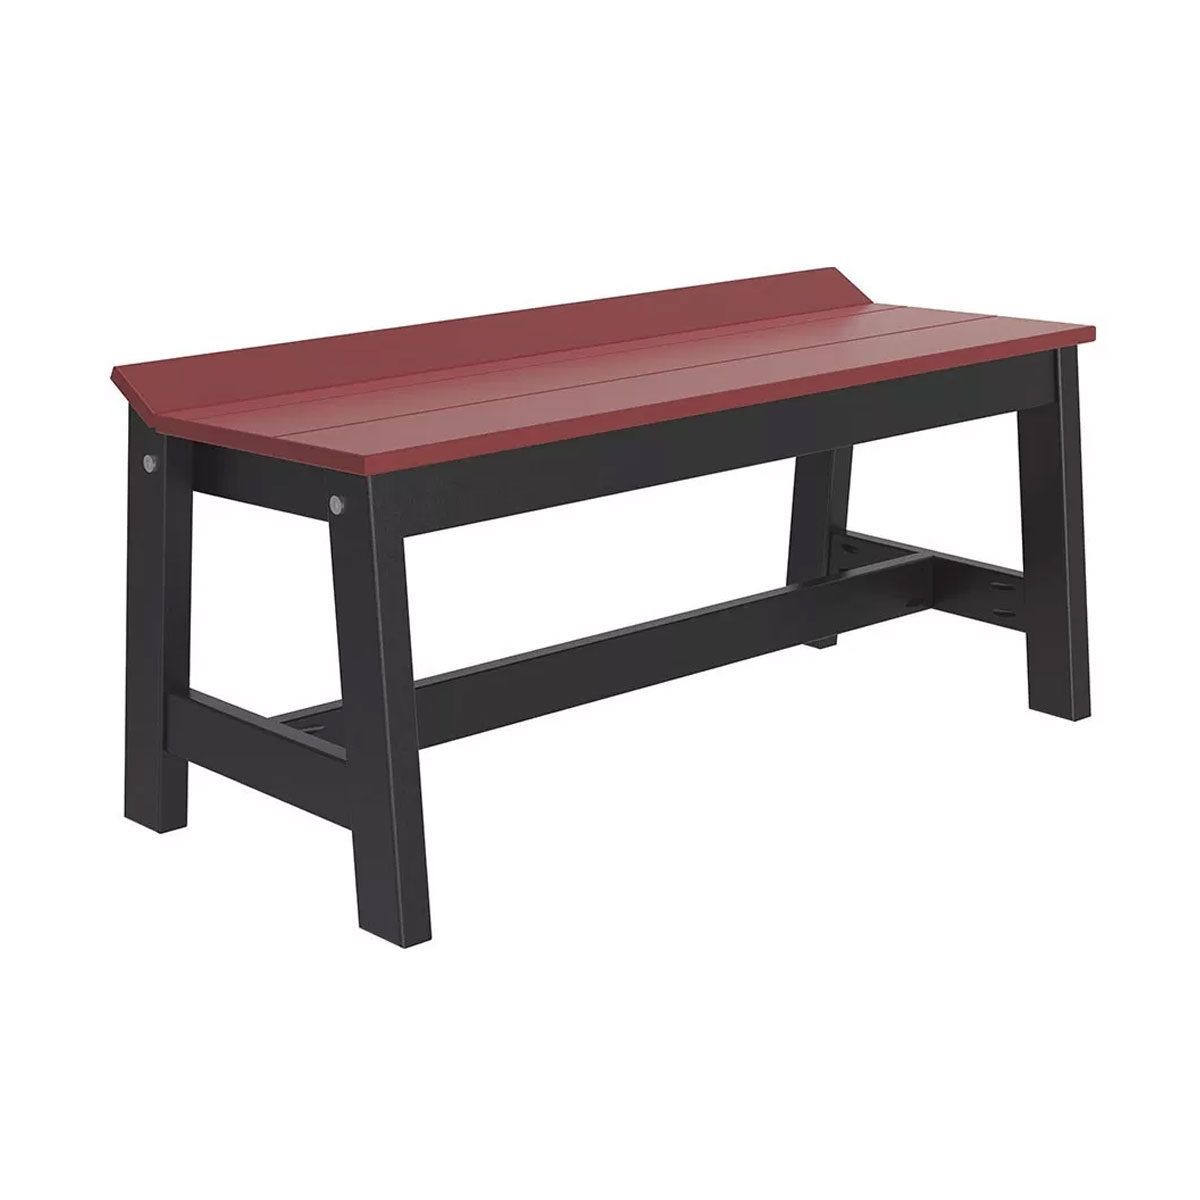 41 inch Cafe Dining Bench